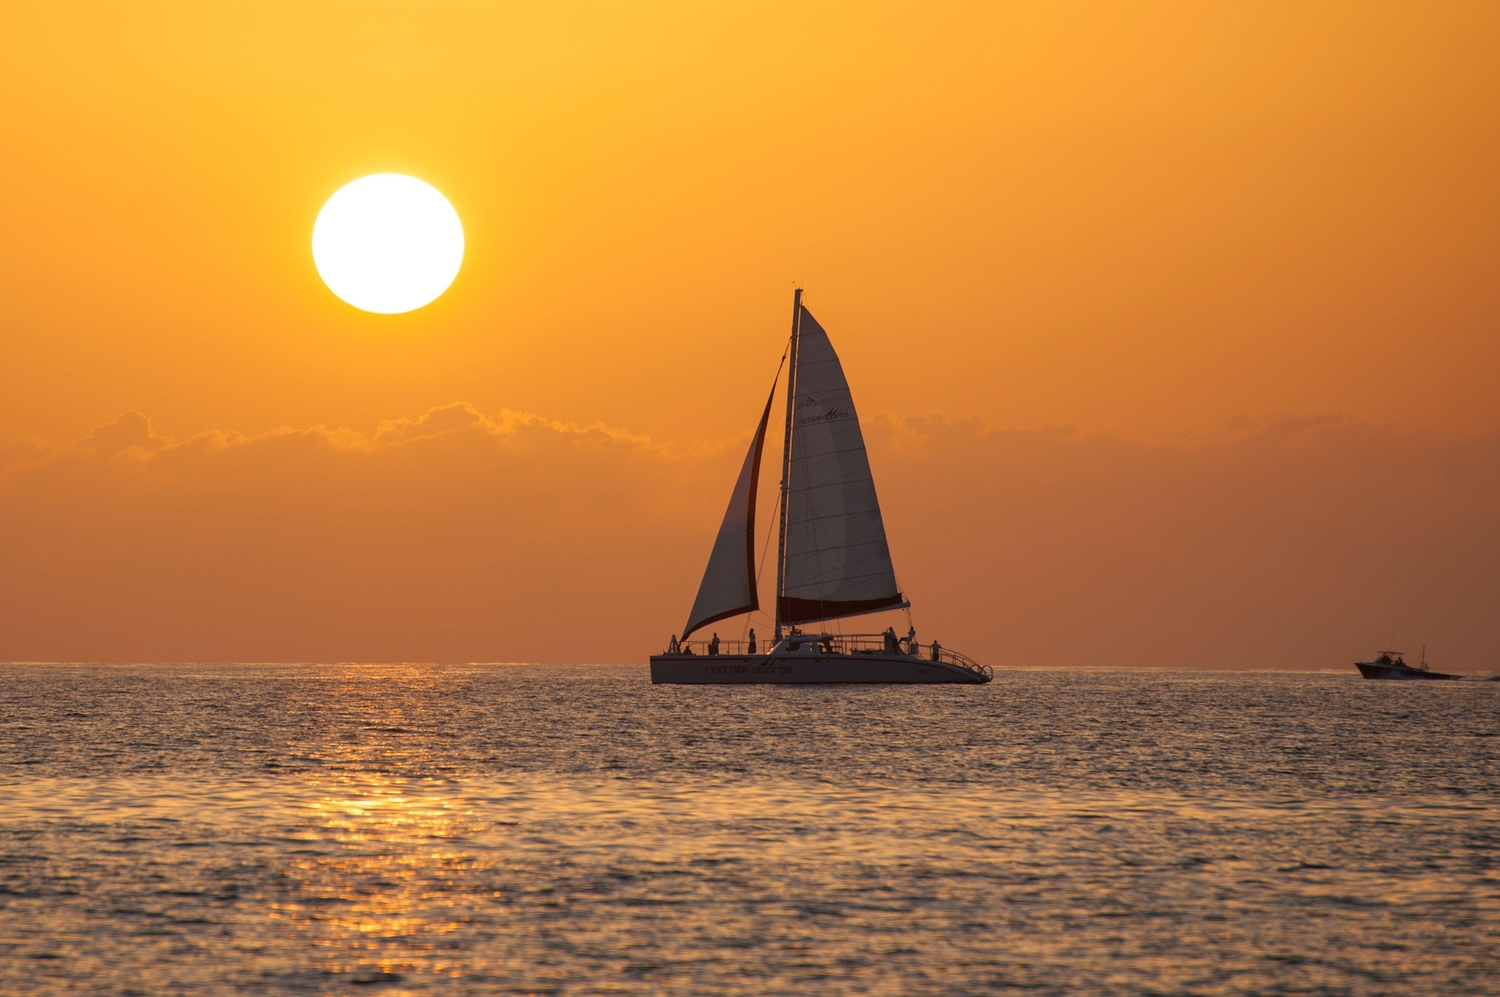 Sailing boat on out at sea during sunset